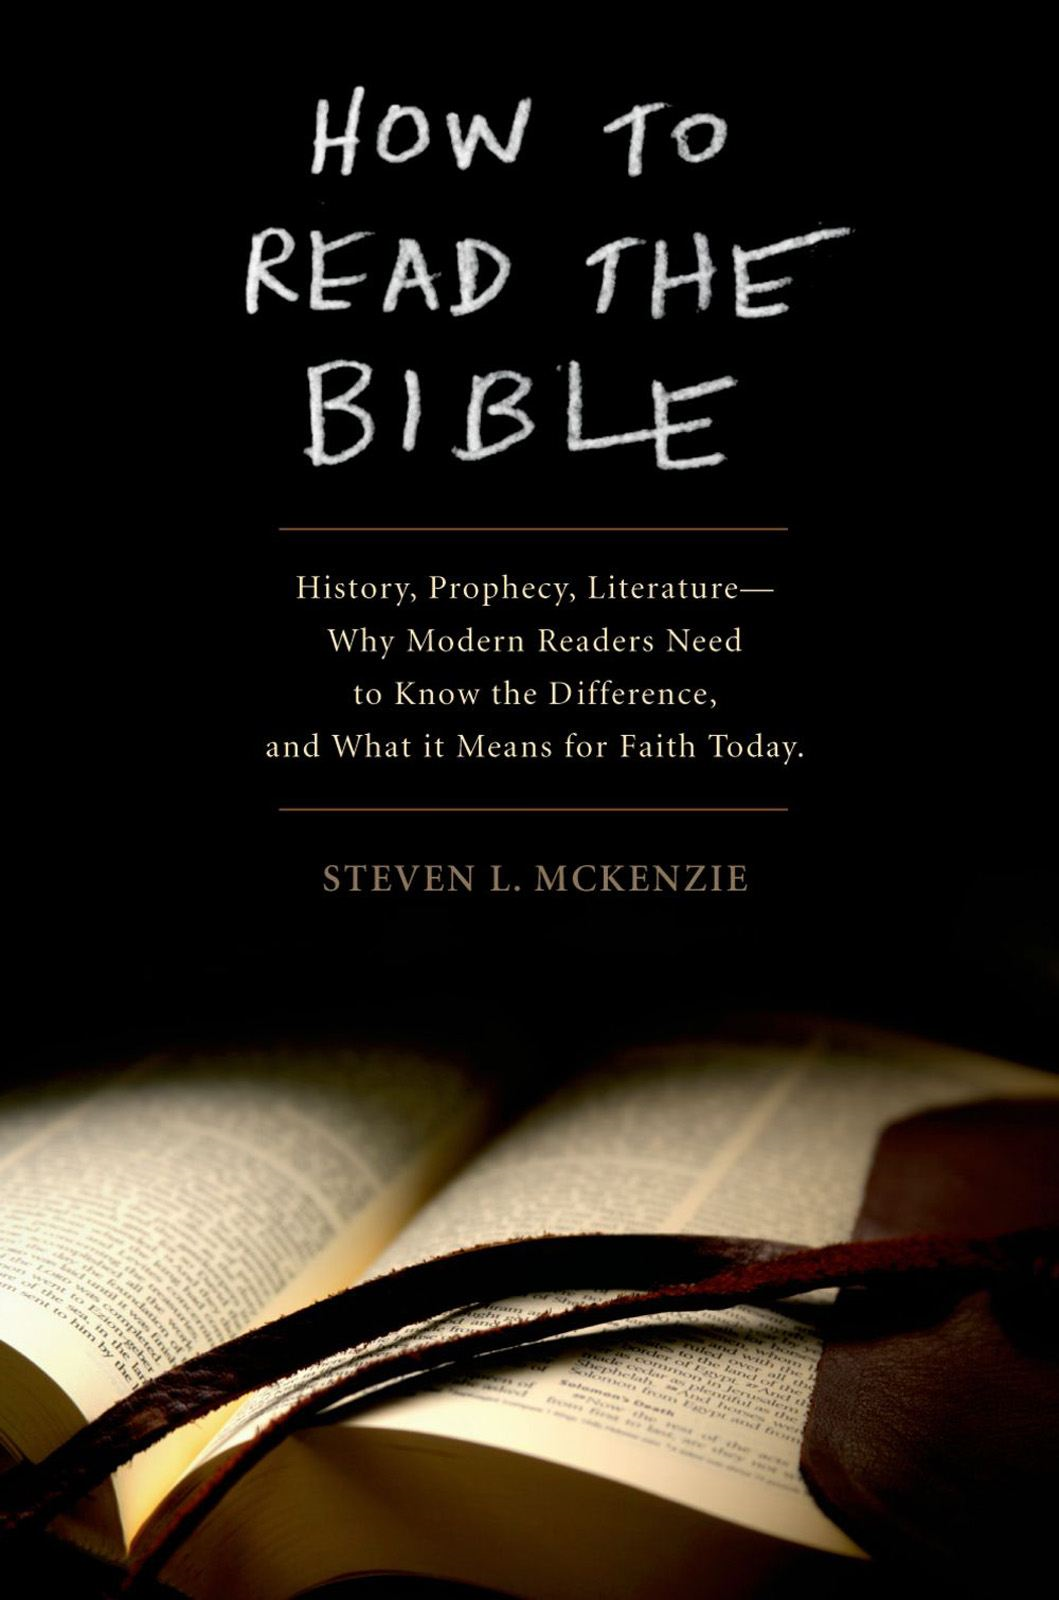 How to Read the Bible:History, Prophecy, Literature--Why Modern Readers Need to Know the Difference and What It Means for Faith Today